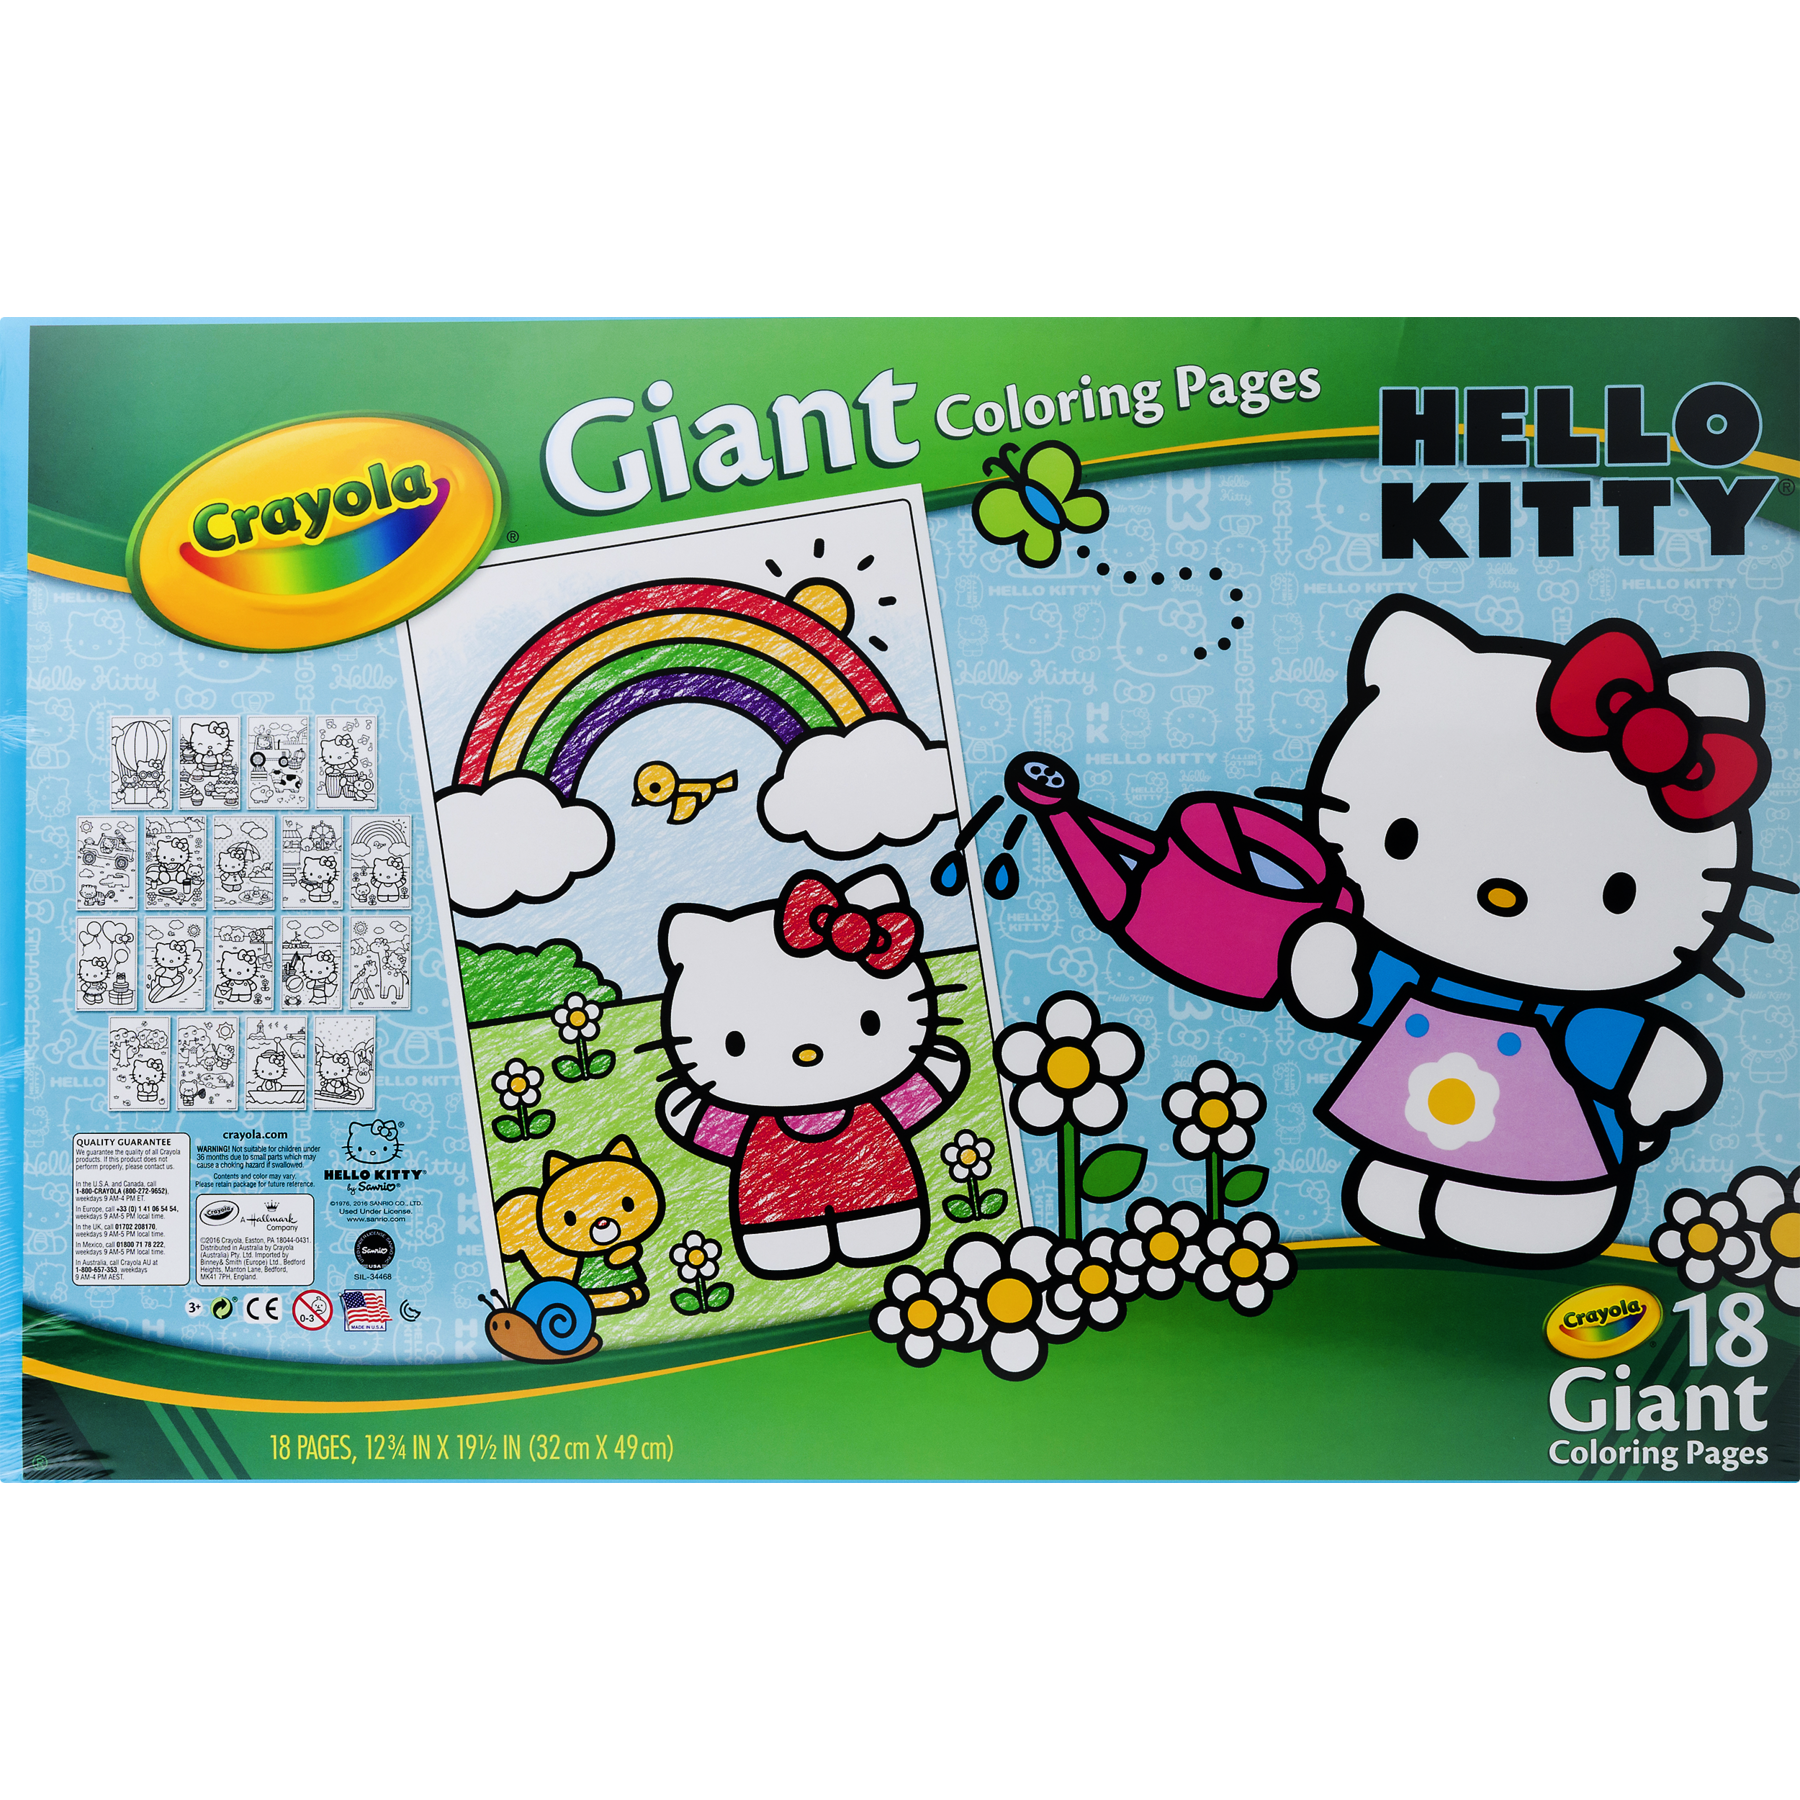 Crayola Giant Coloring Pages, Hello Kitty, 18-Count - Walmart.com